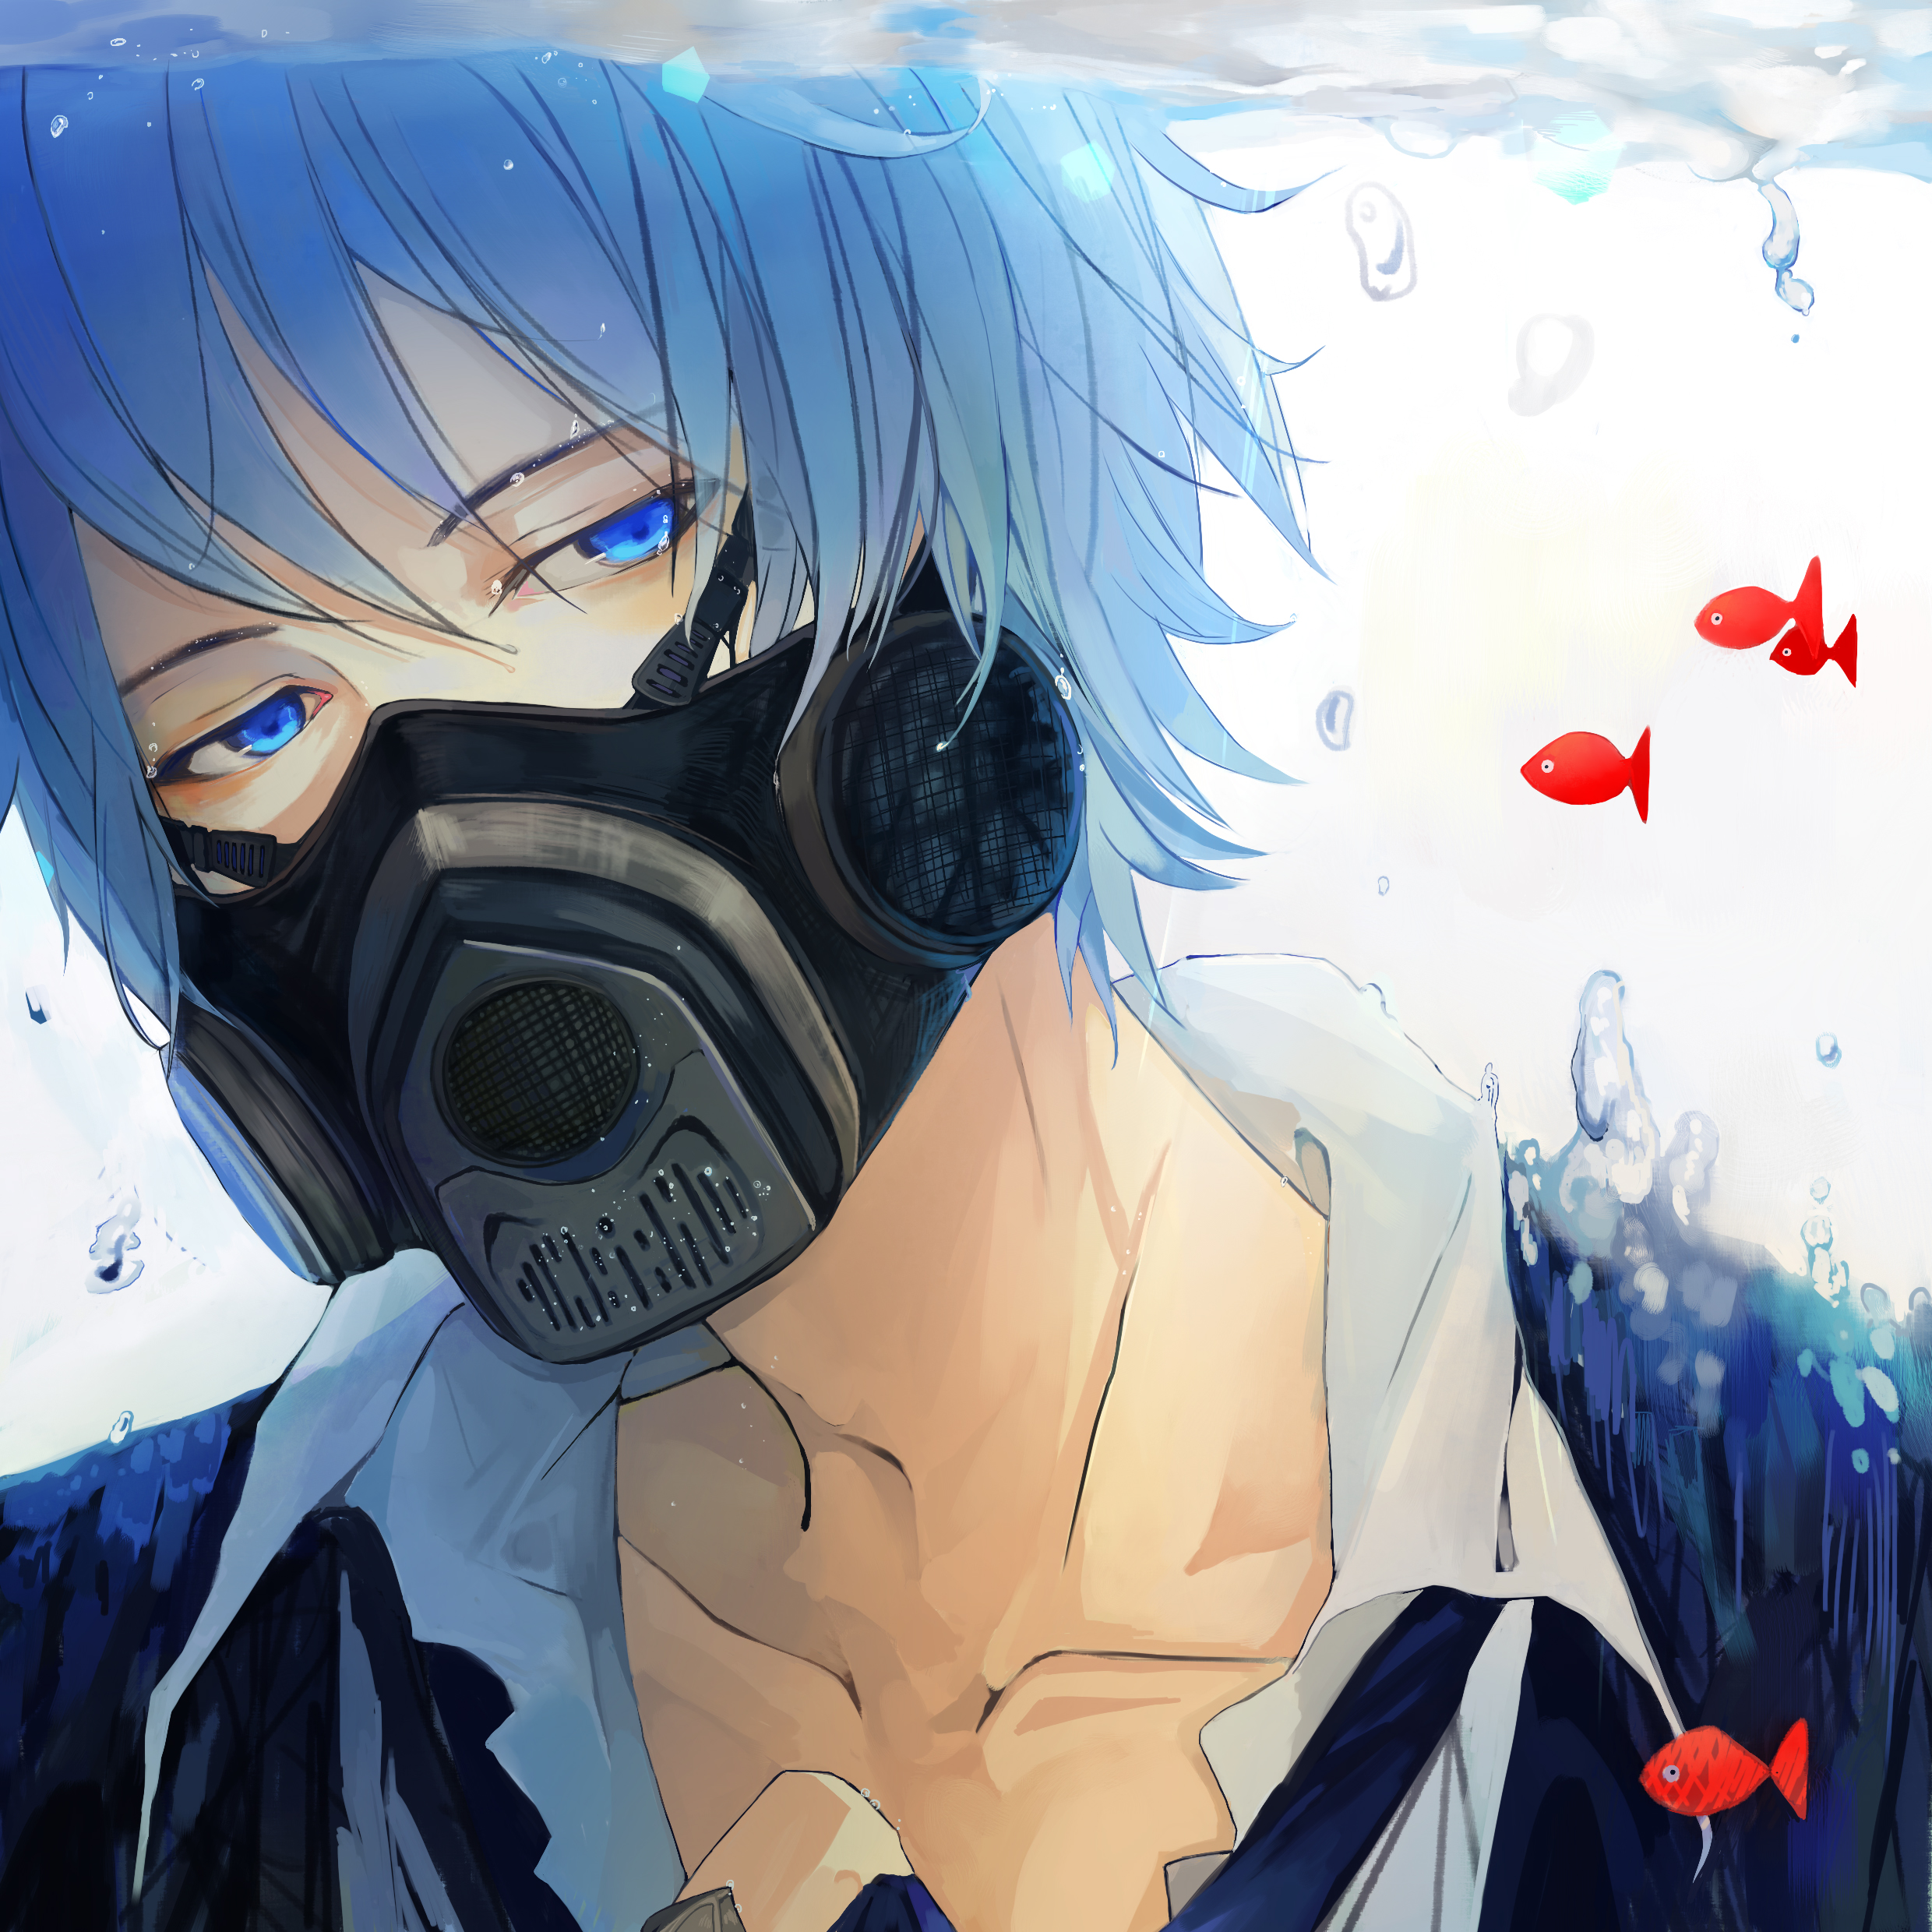 Chicos sexys con Gas Mask <3 KAITO.full.1498721